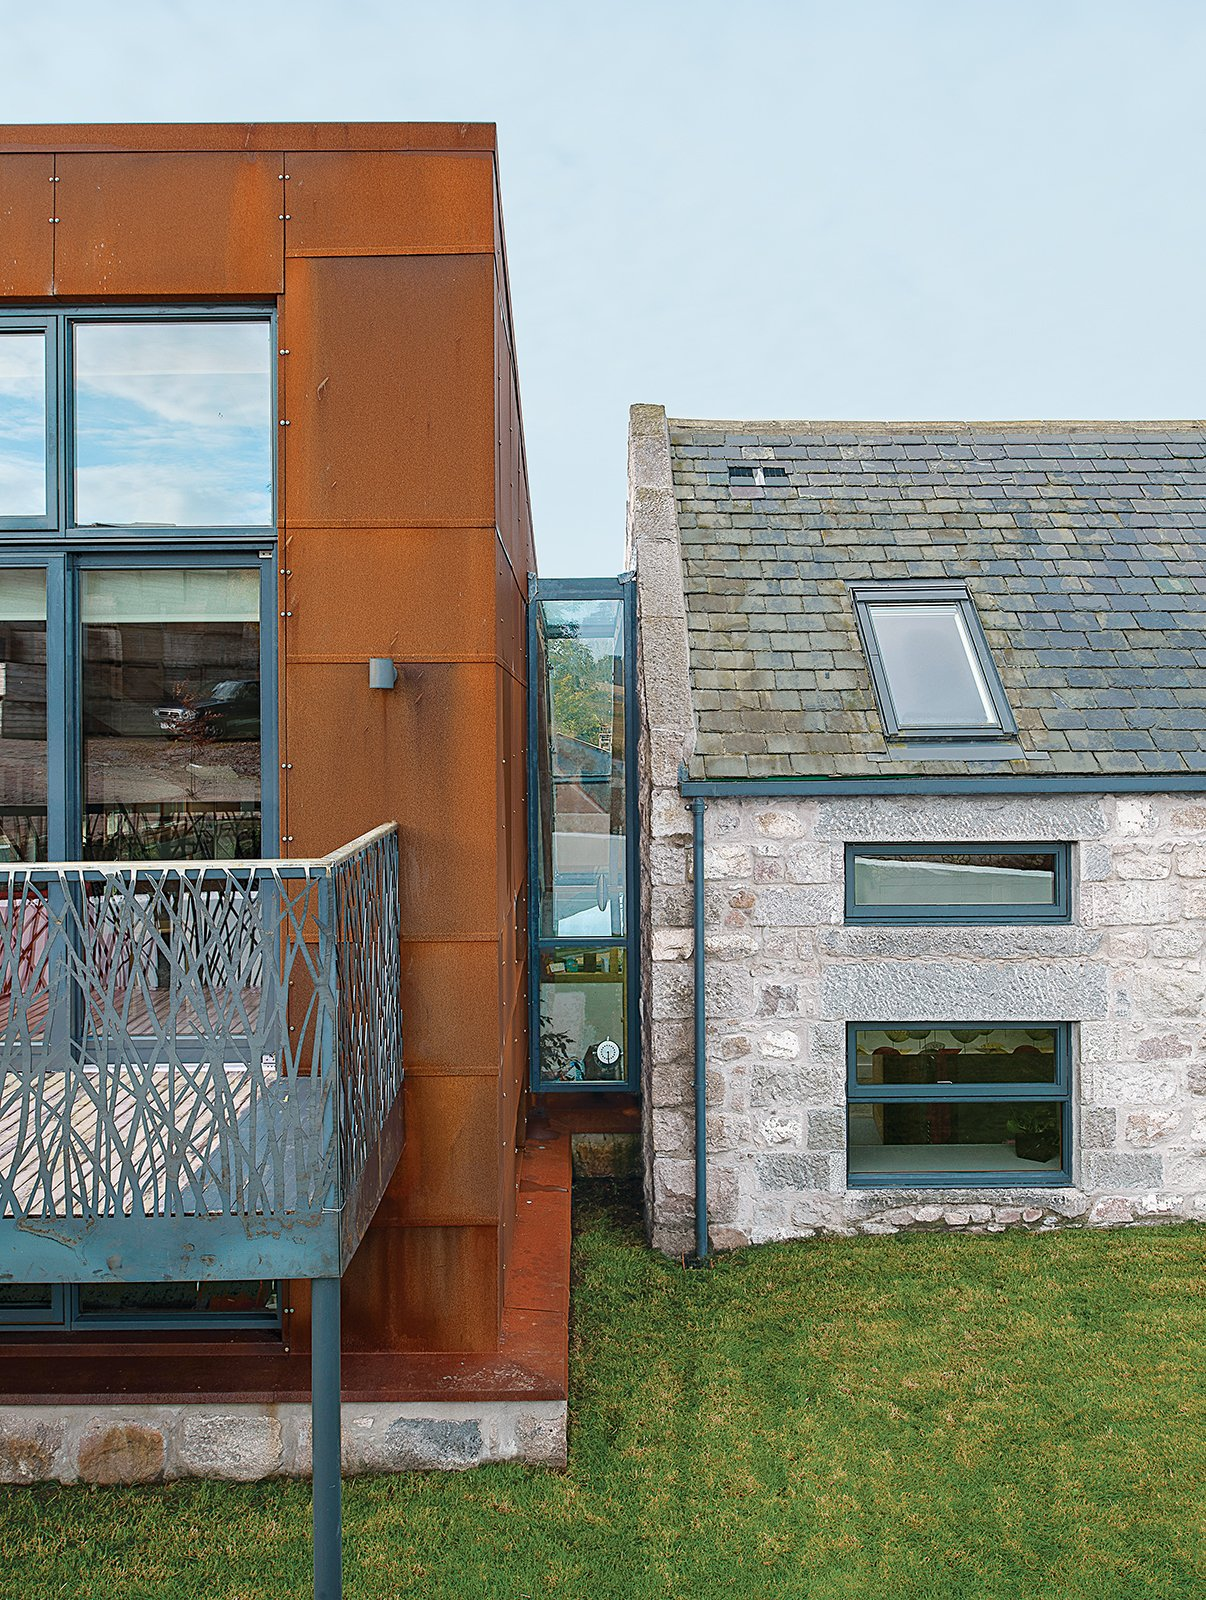 """Cor-Ten steel from a ship building yard clads the new structure, which connects via a glass """"bridge"""" to a rebuilt stone farmhouse containing the bedrooms. 15 Modern Additions to Traditional Homes - Photo 14 of 16"""